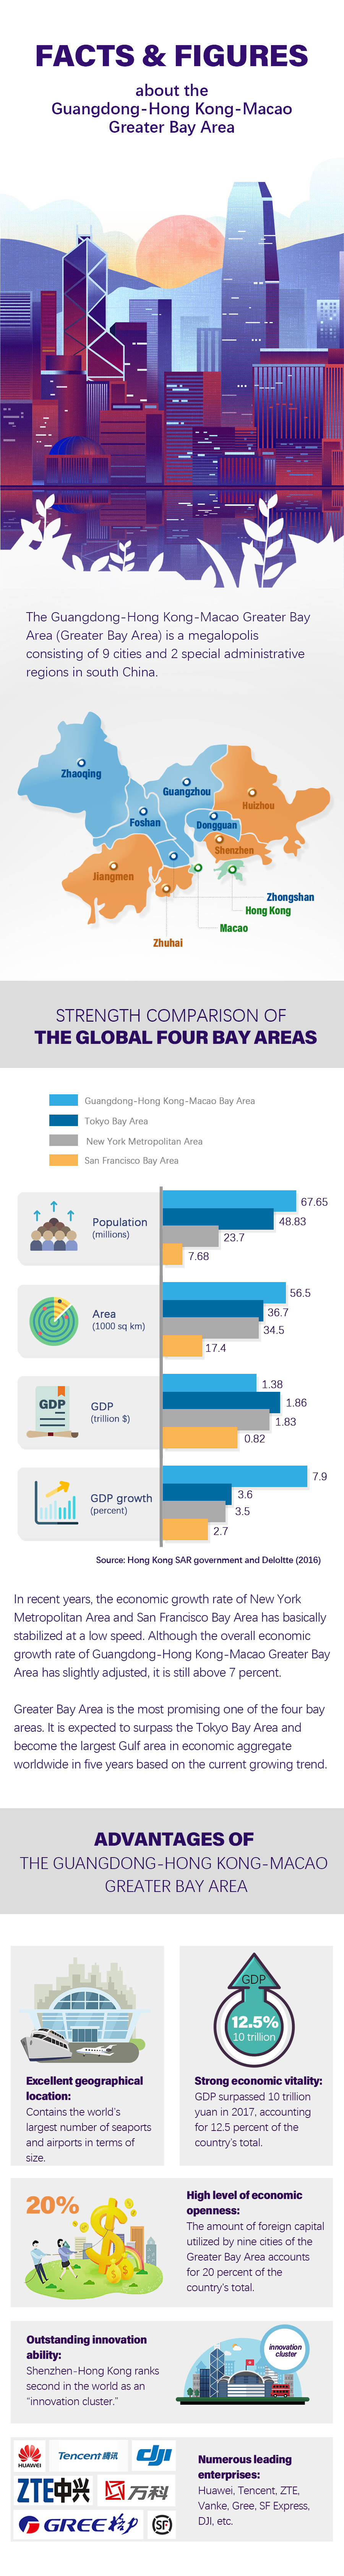 Facts & Figures about the Guangdong-Hong Kong-Macao Greater Bay Area